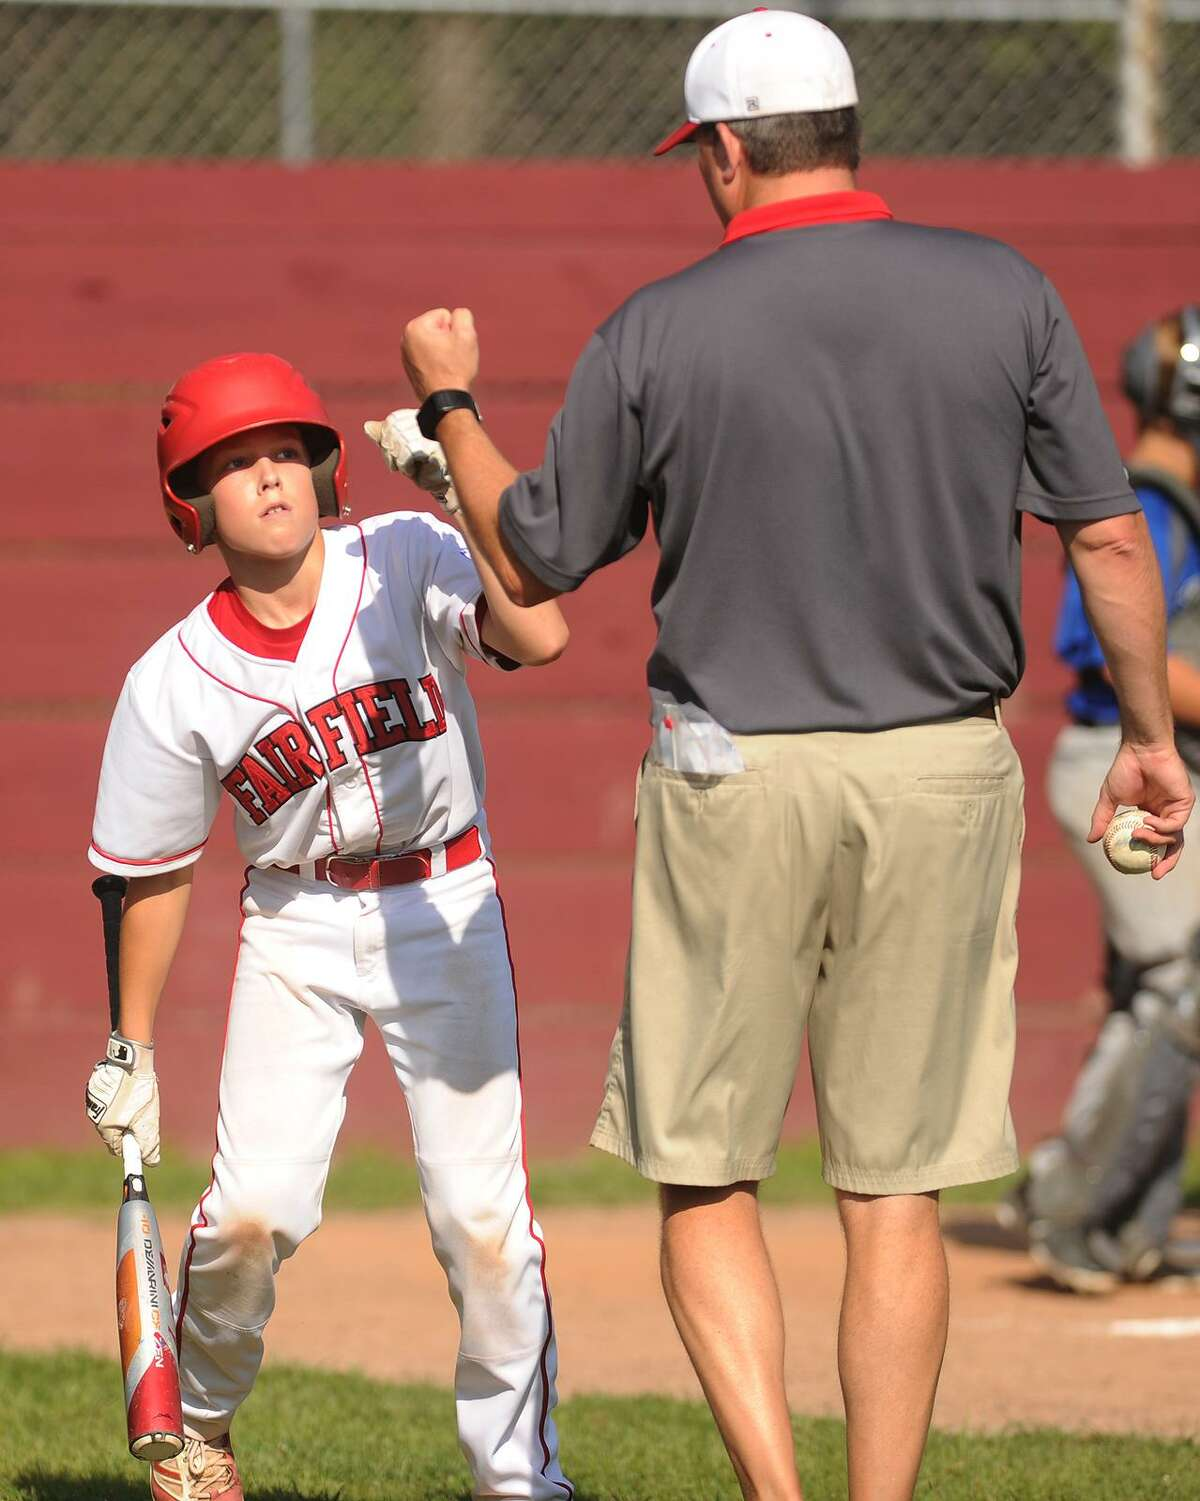 Fairfield American defeats Manchester National 11-9 to win the Little League State Championship at East Lyme Field in Niantic, Conn. on Sunday, July 29, 2018.